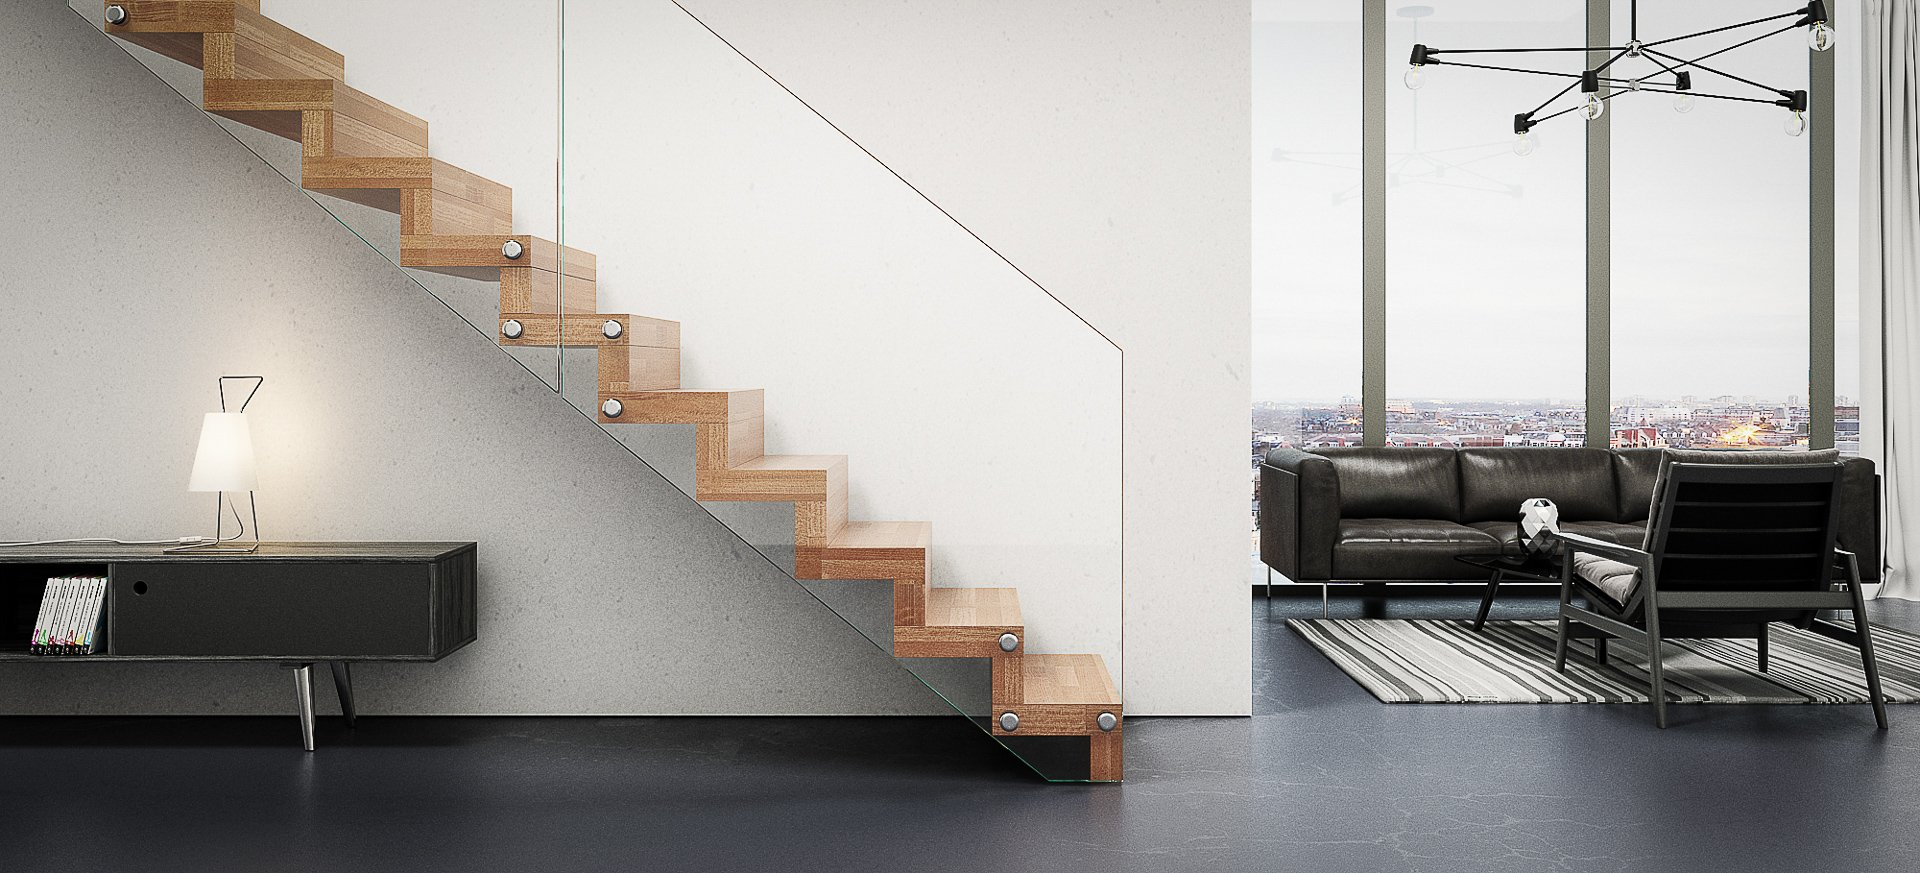 treppe mit glas a aus glas fly siller treppen bild. Black Bedroom Furniture Sets. Home Design Ideas